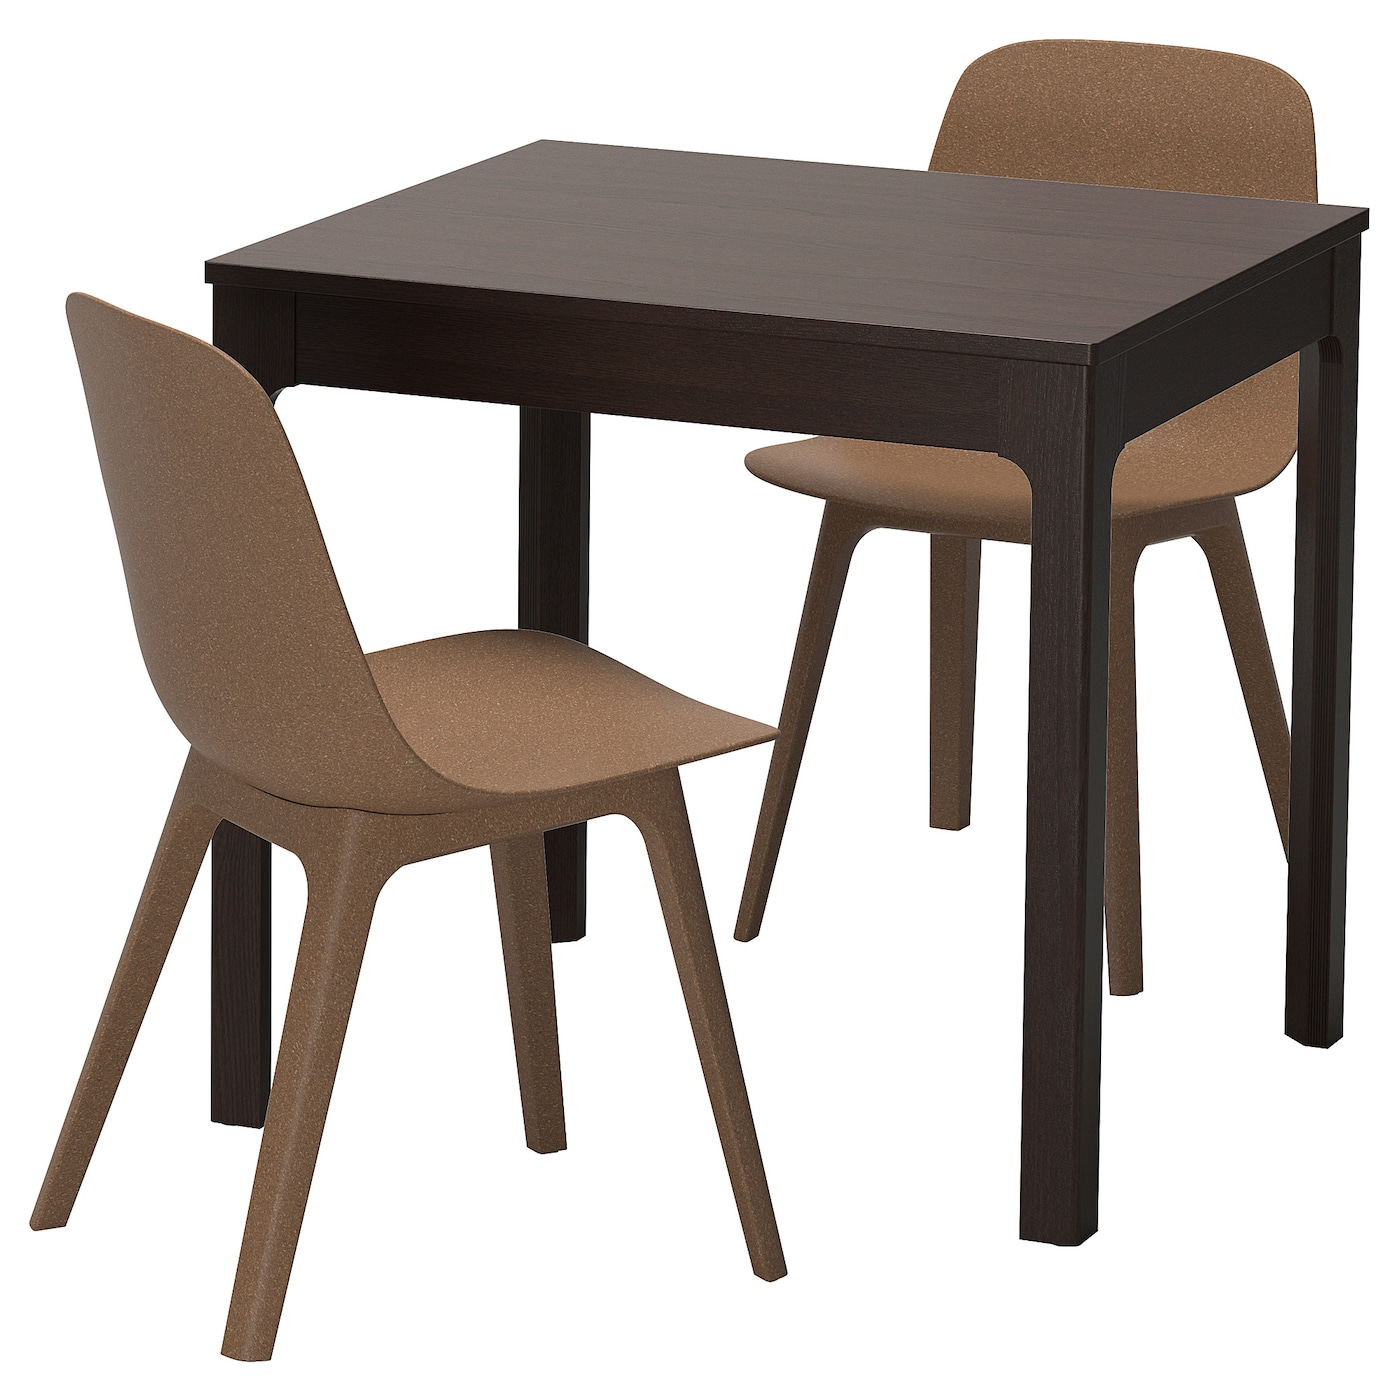 d926d42f295 IKEA ODGER EKEDALEN table and 2 chairs Can be easily extended by one person.